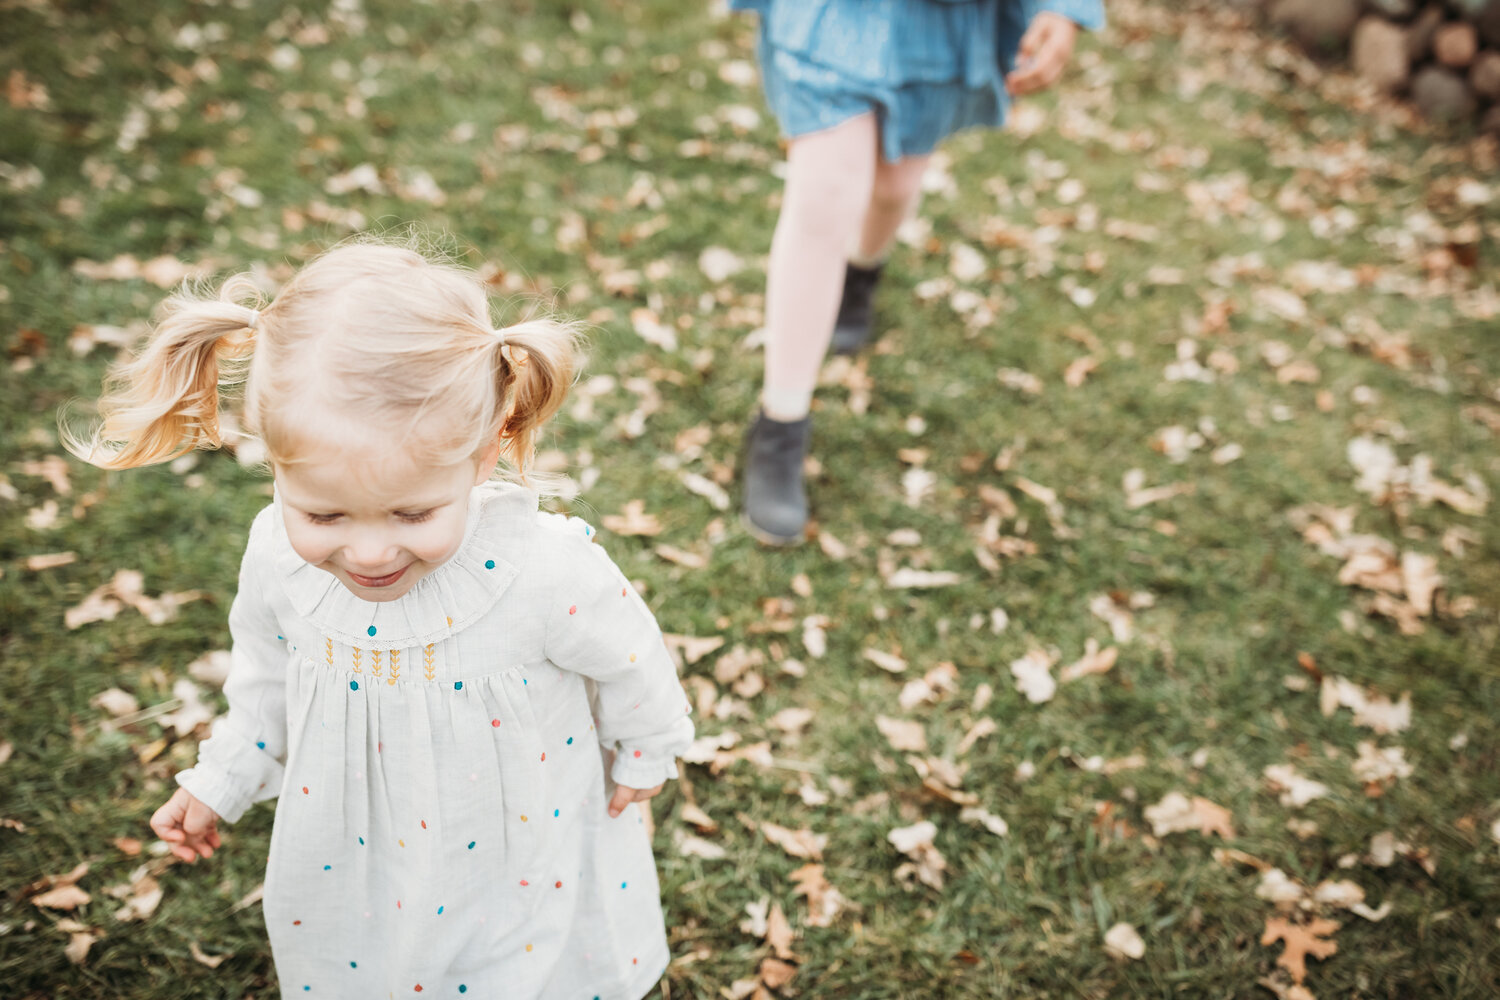 little girl in white dress with colorful polka dots running - Minnesota Family Photographer